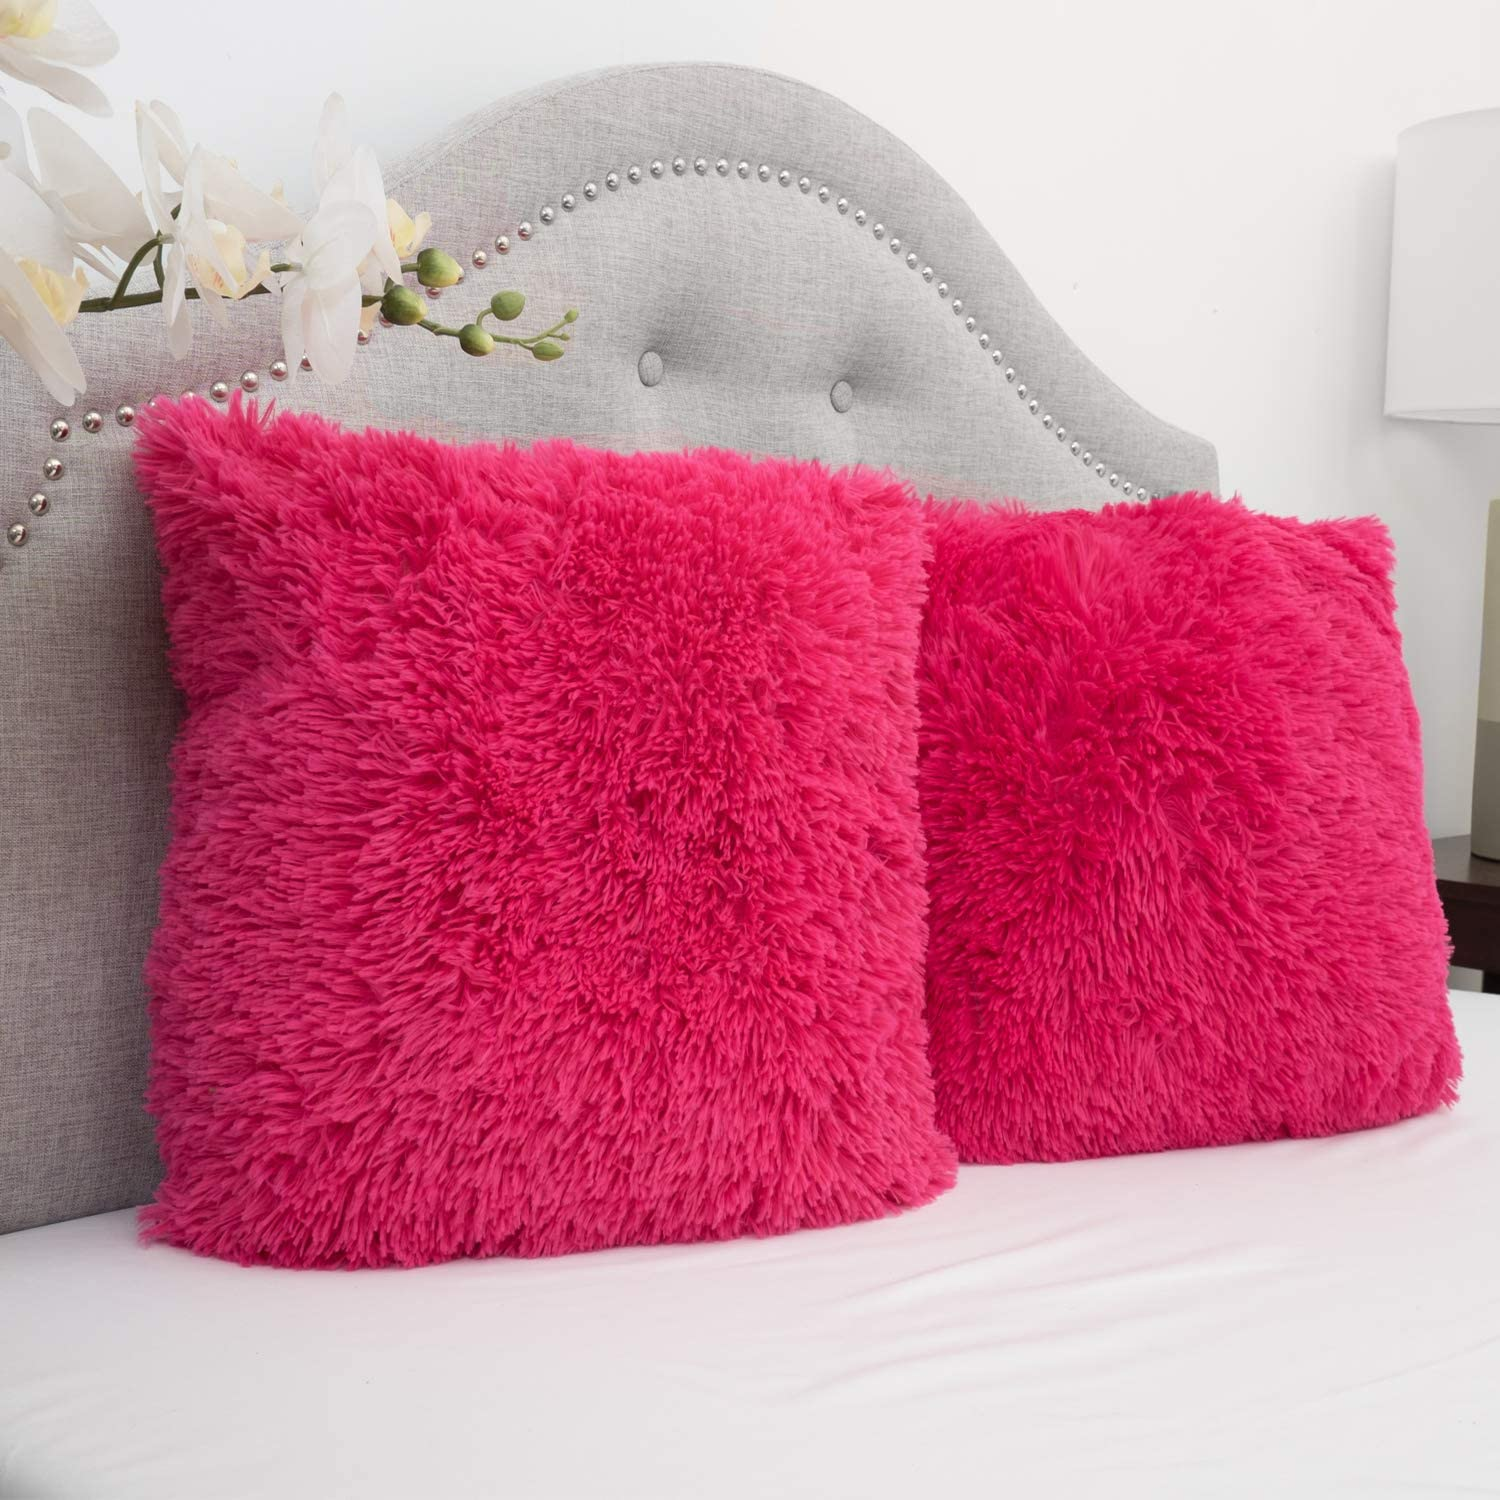 Sweet Home Collection Plush Pillow Faux Fur Soft and Comfy Throw Pillow (Pack of 2), Hot Pink